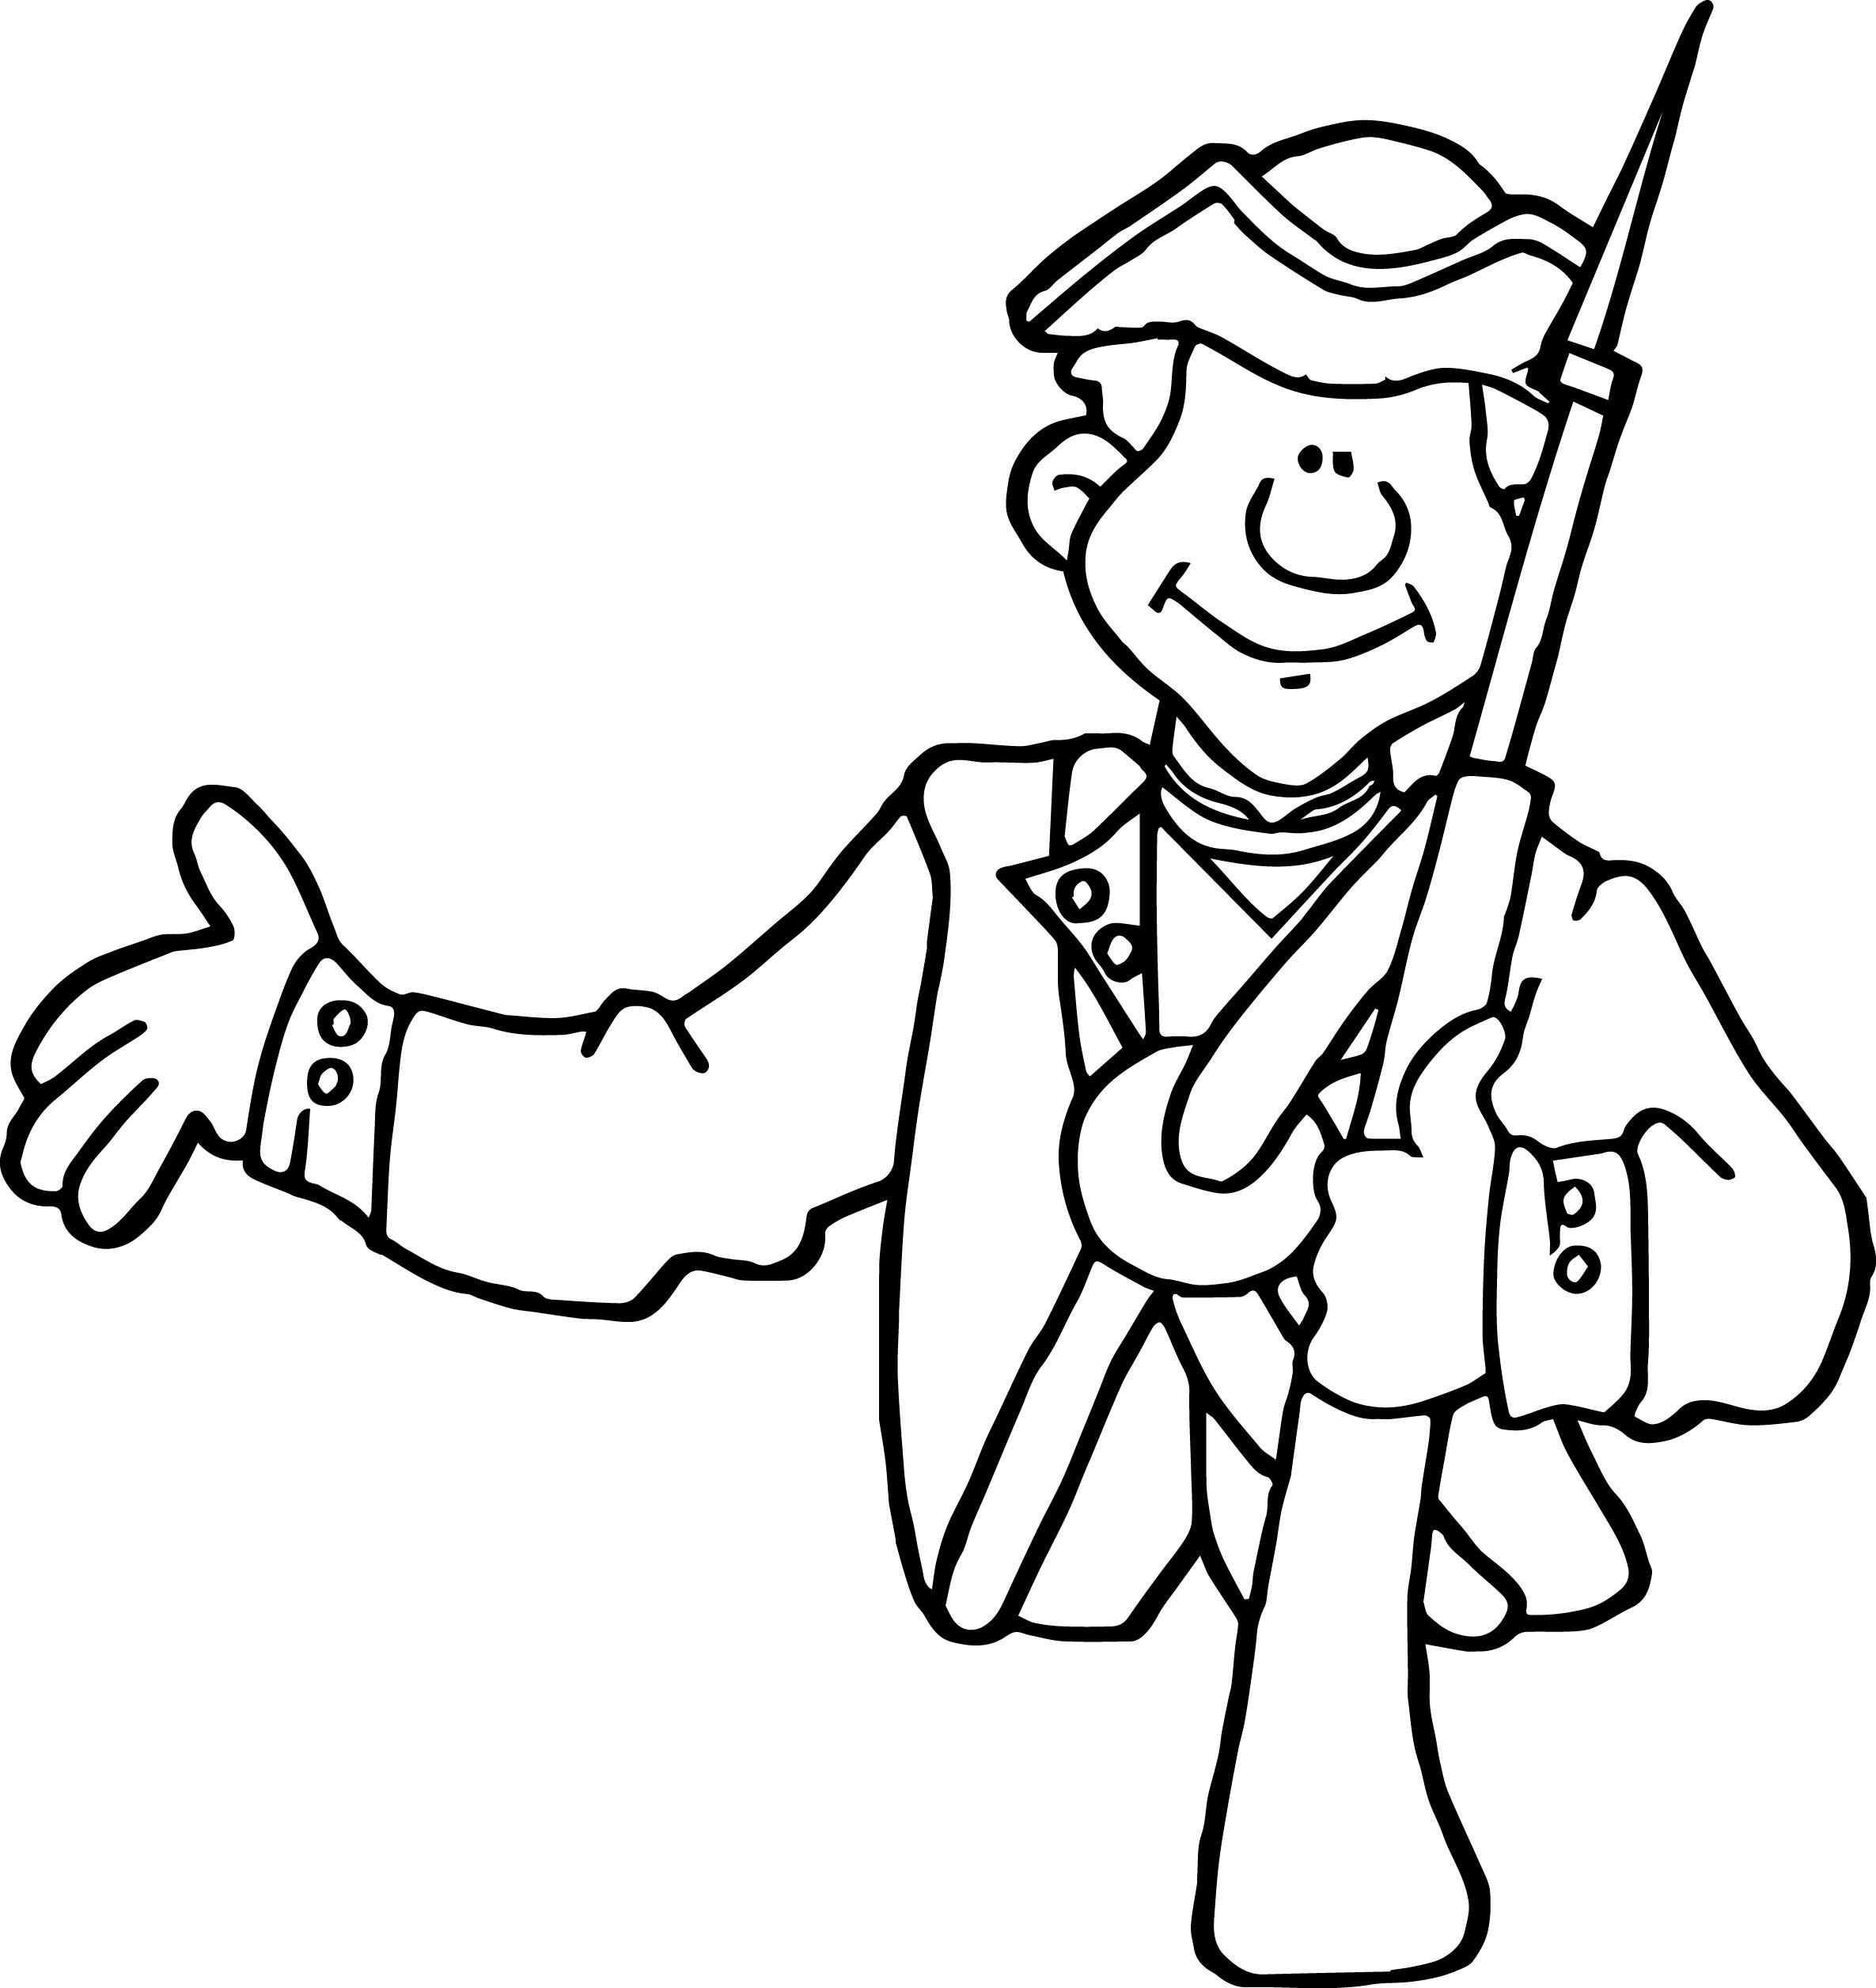 2371x2513 British Revolutionary War Soldier Coloring Page Free Printable